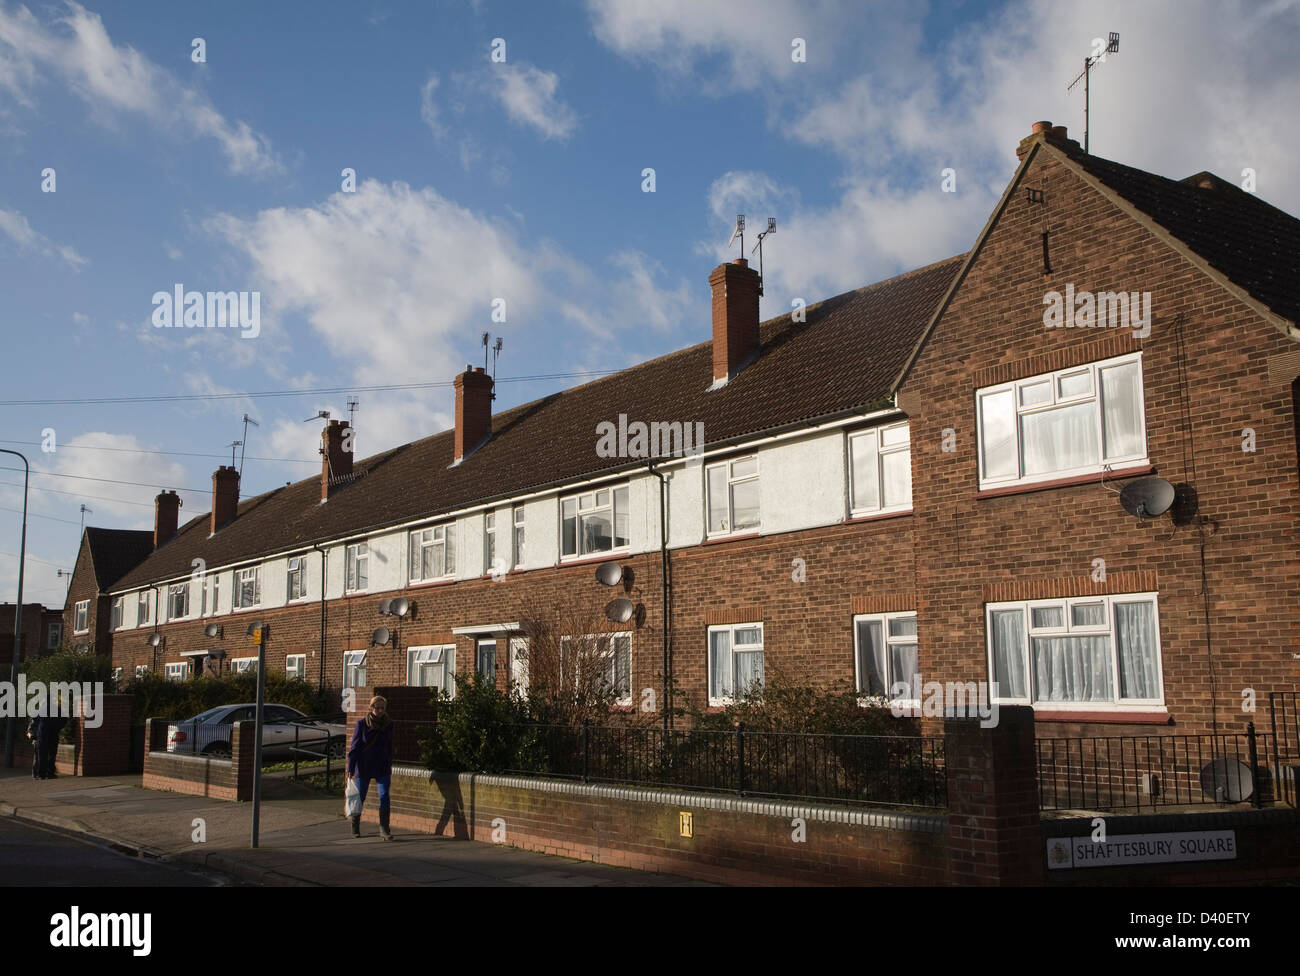 Inner city council housing, Shaftesbury Square, Ipswich, Suffolk, England - Stock Image